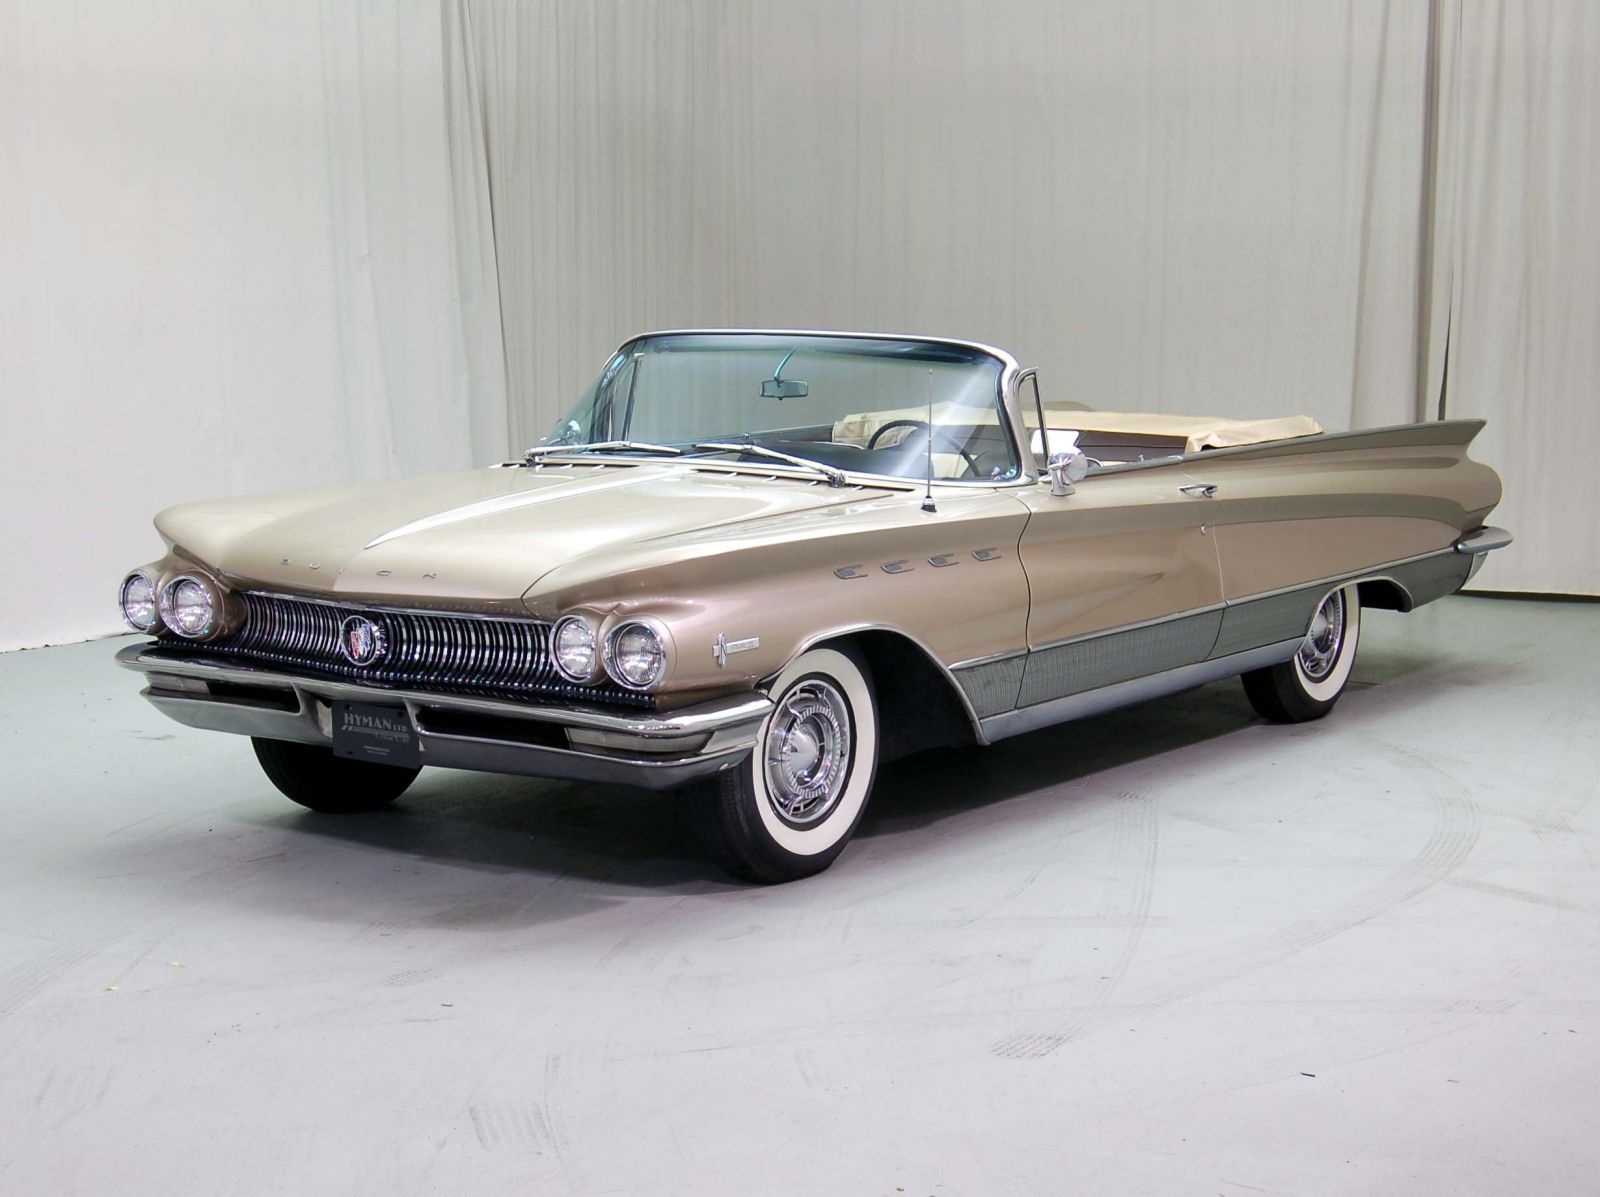 1960 Buick Electra Convertible Classic Car For Sale   Buy 1960 Buick Electra Convertible at Hyman LTD